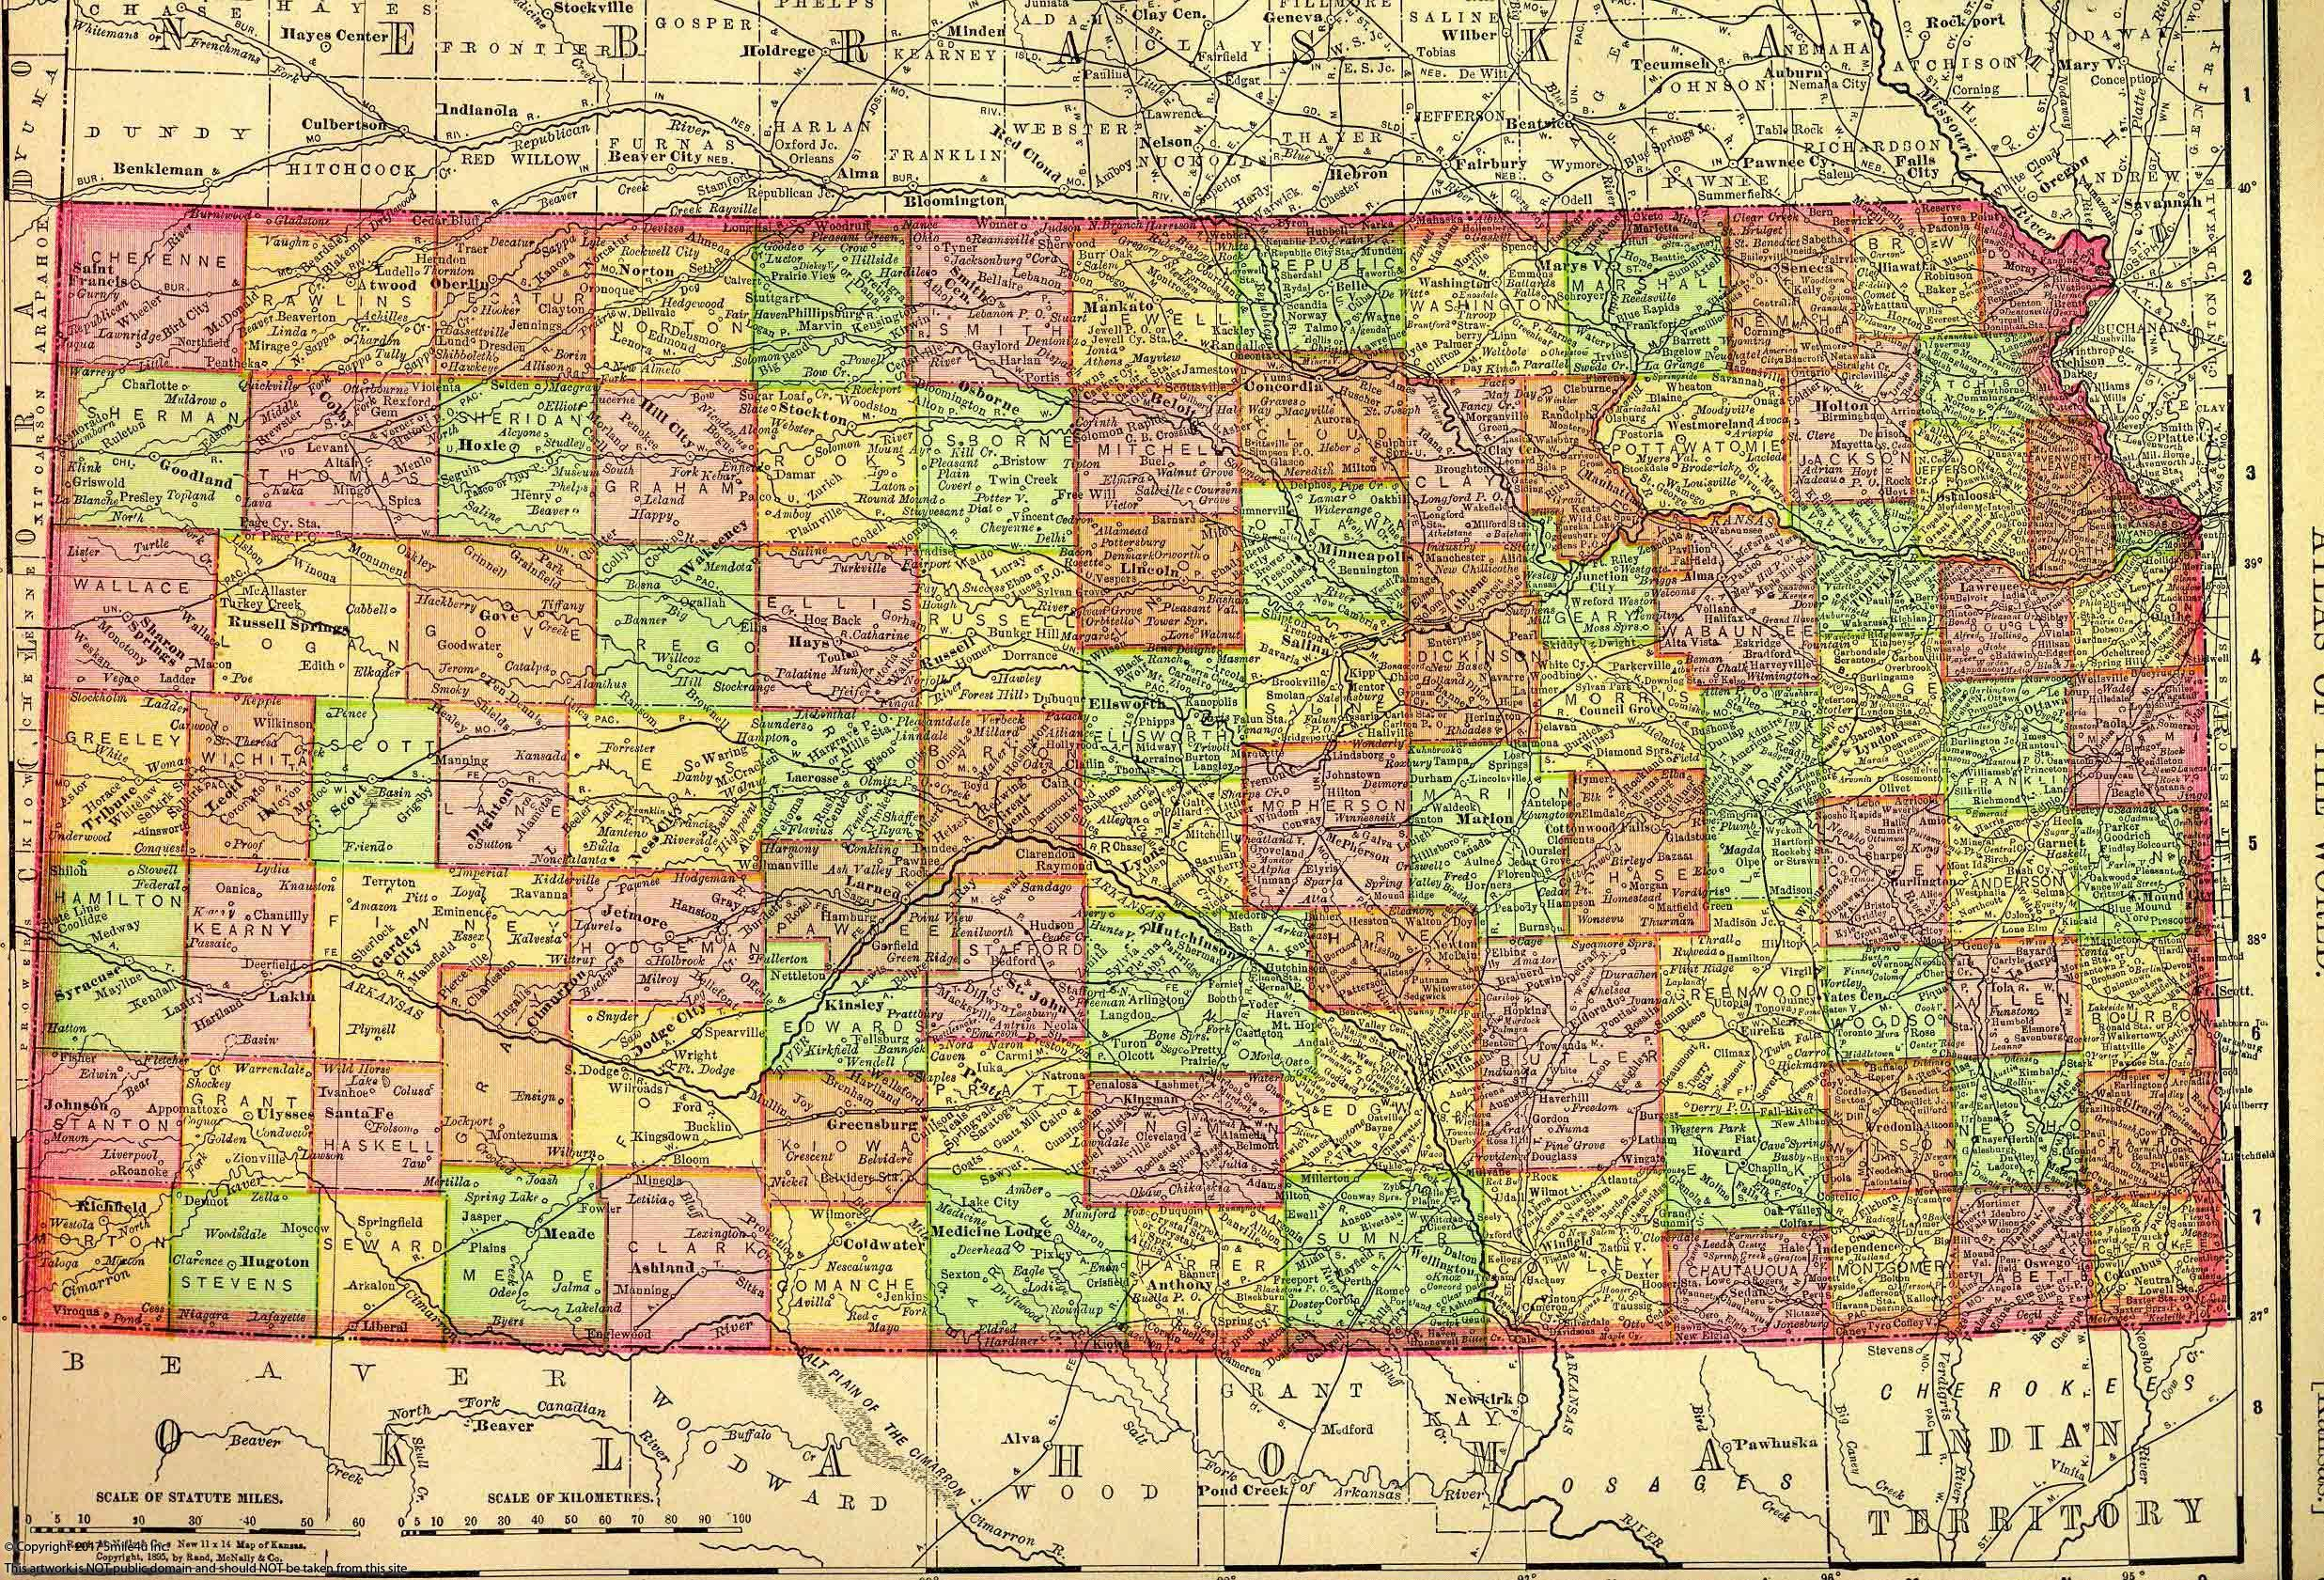 242257_watermarked_kansas1895.jpg